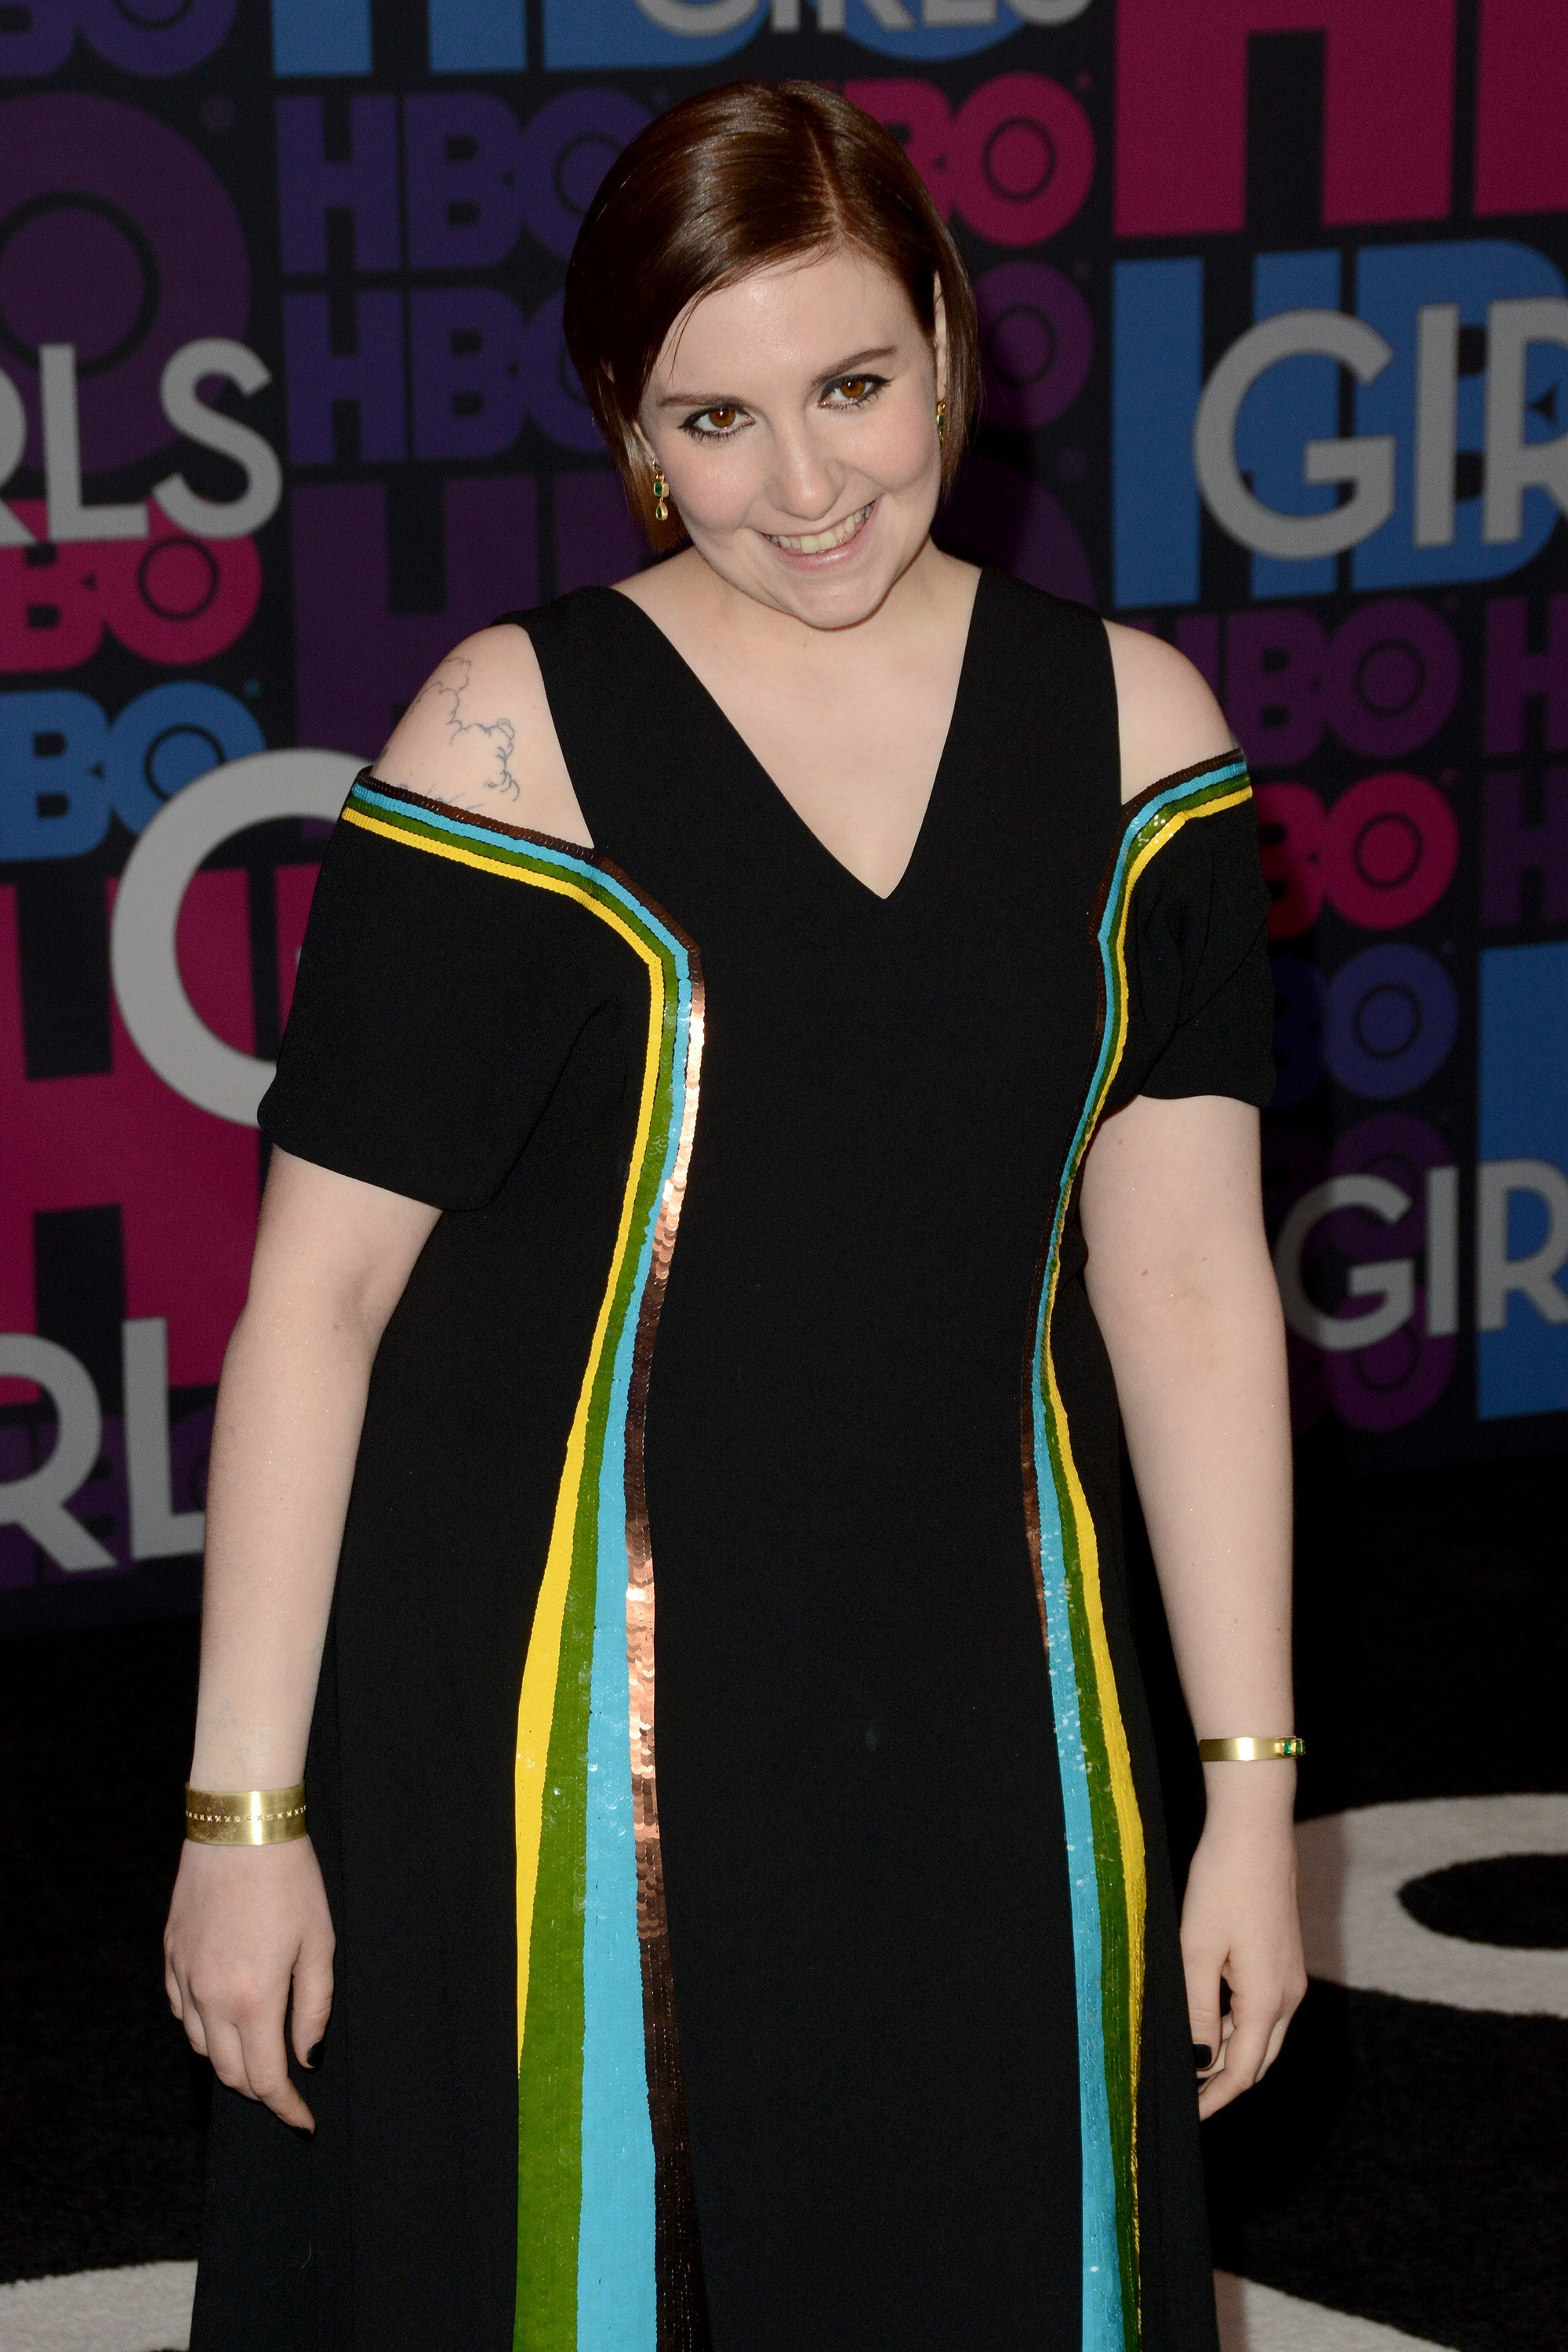 Lena Dunham is launching a book publishing imprint